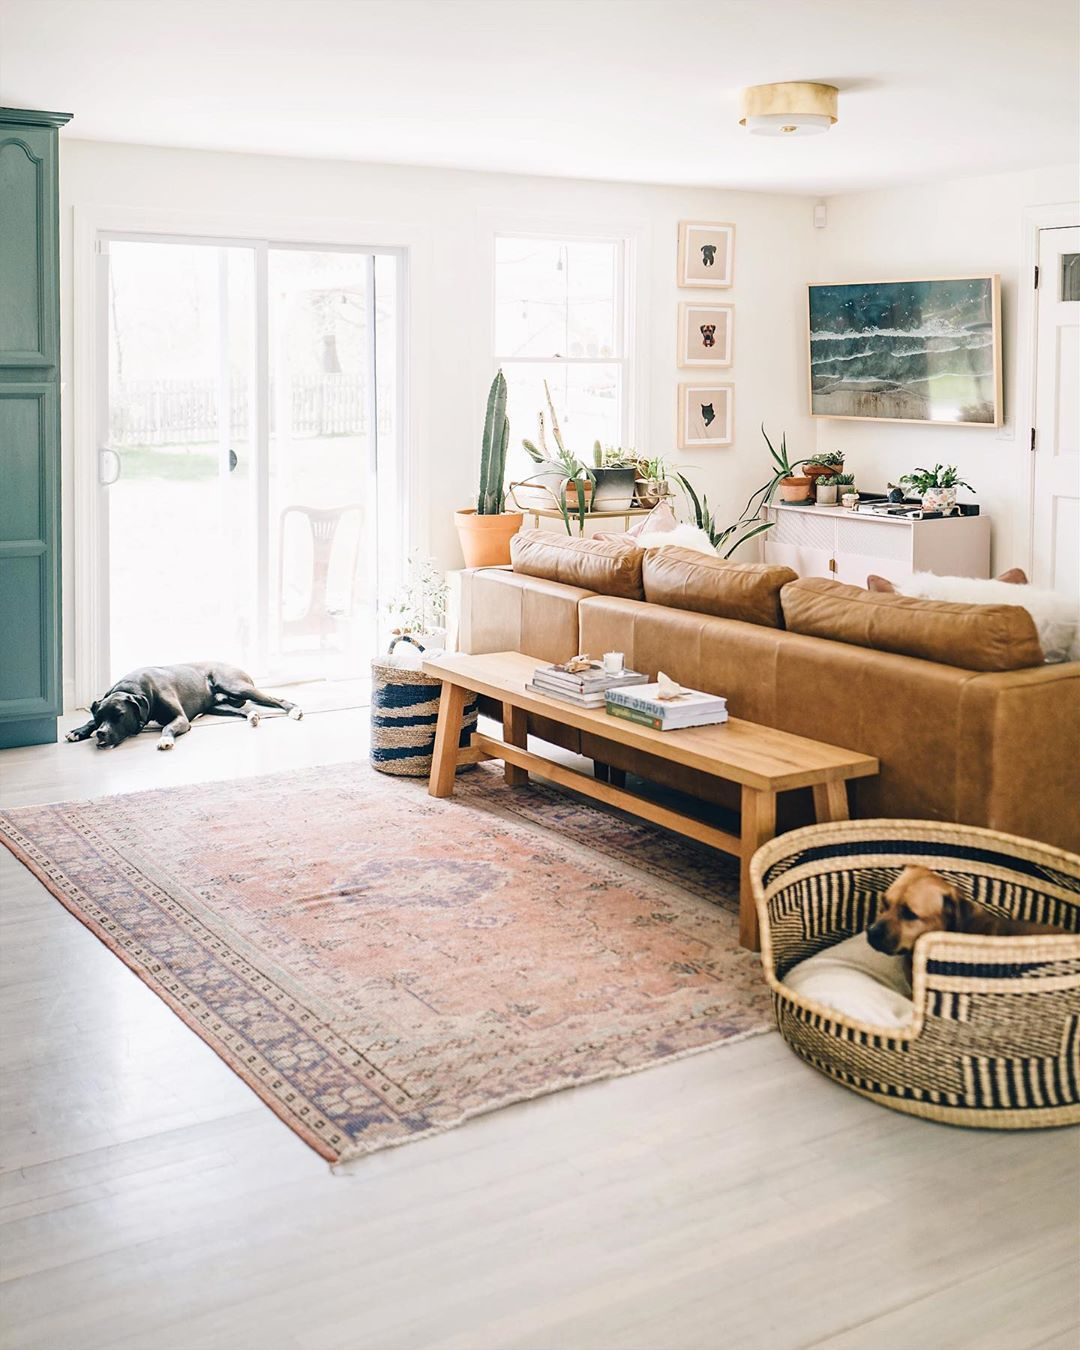 Beautiful Cozy Homes: At Home In The Cozy Ranch Via @jessannkirby